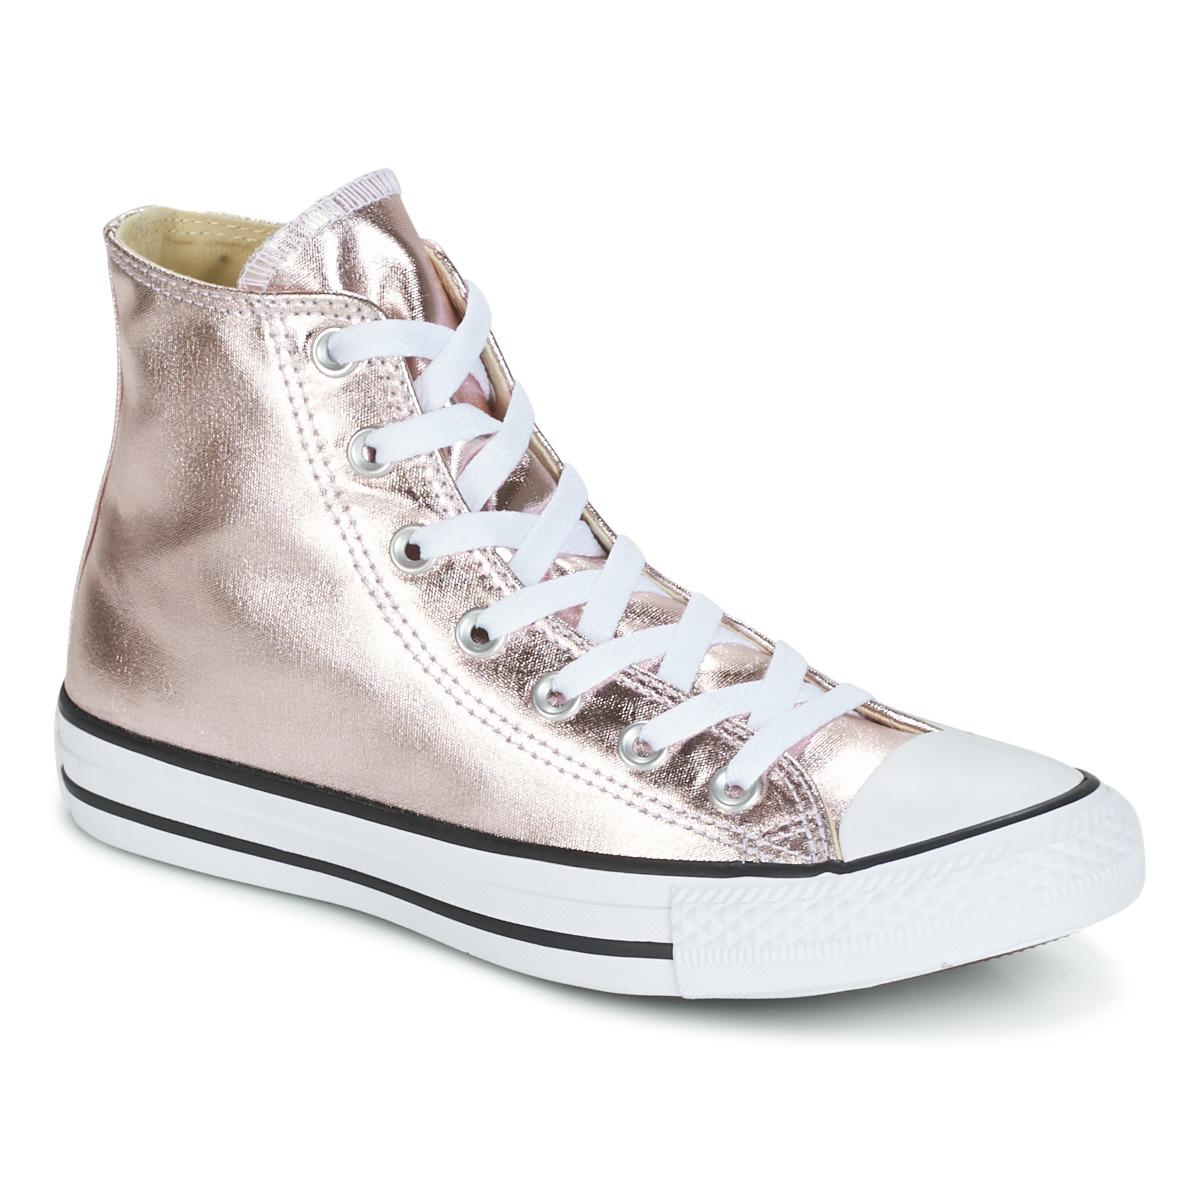 Converse Chuck Taylor All Star Metallic Canvas Hi Rose Quartz white ... c049d1912